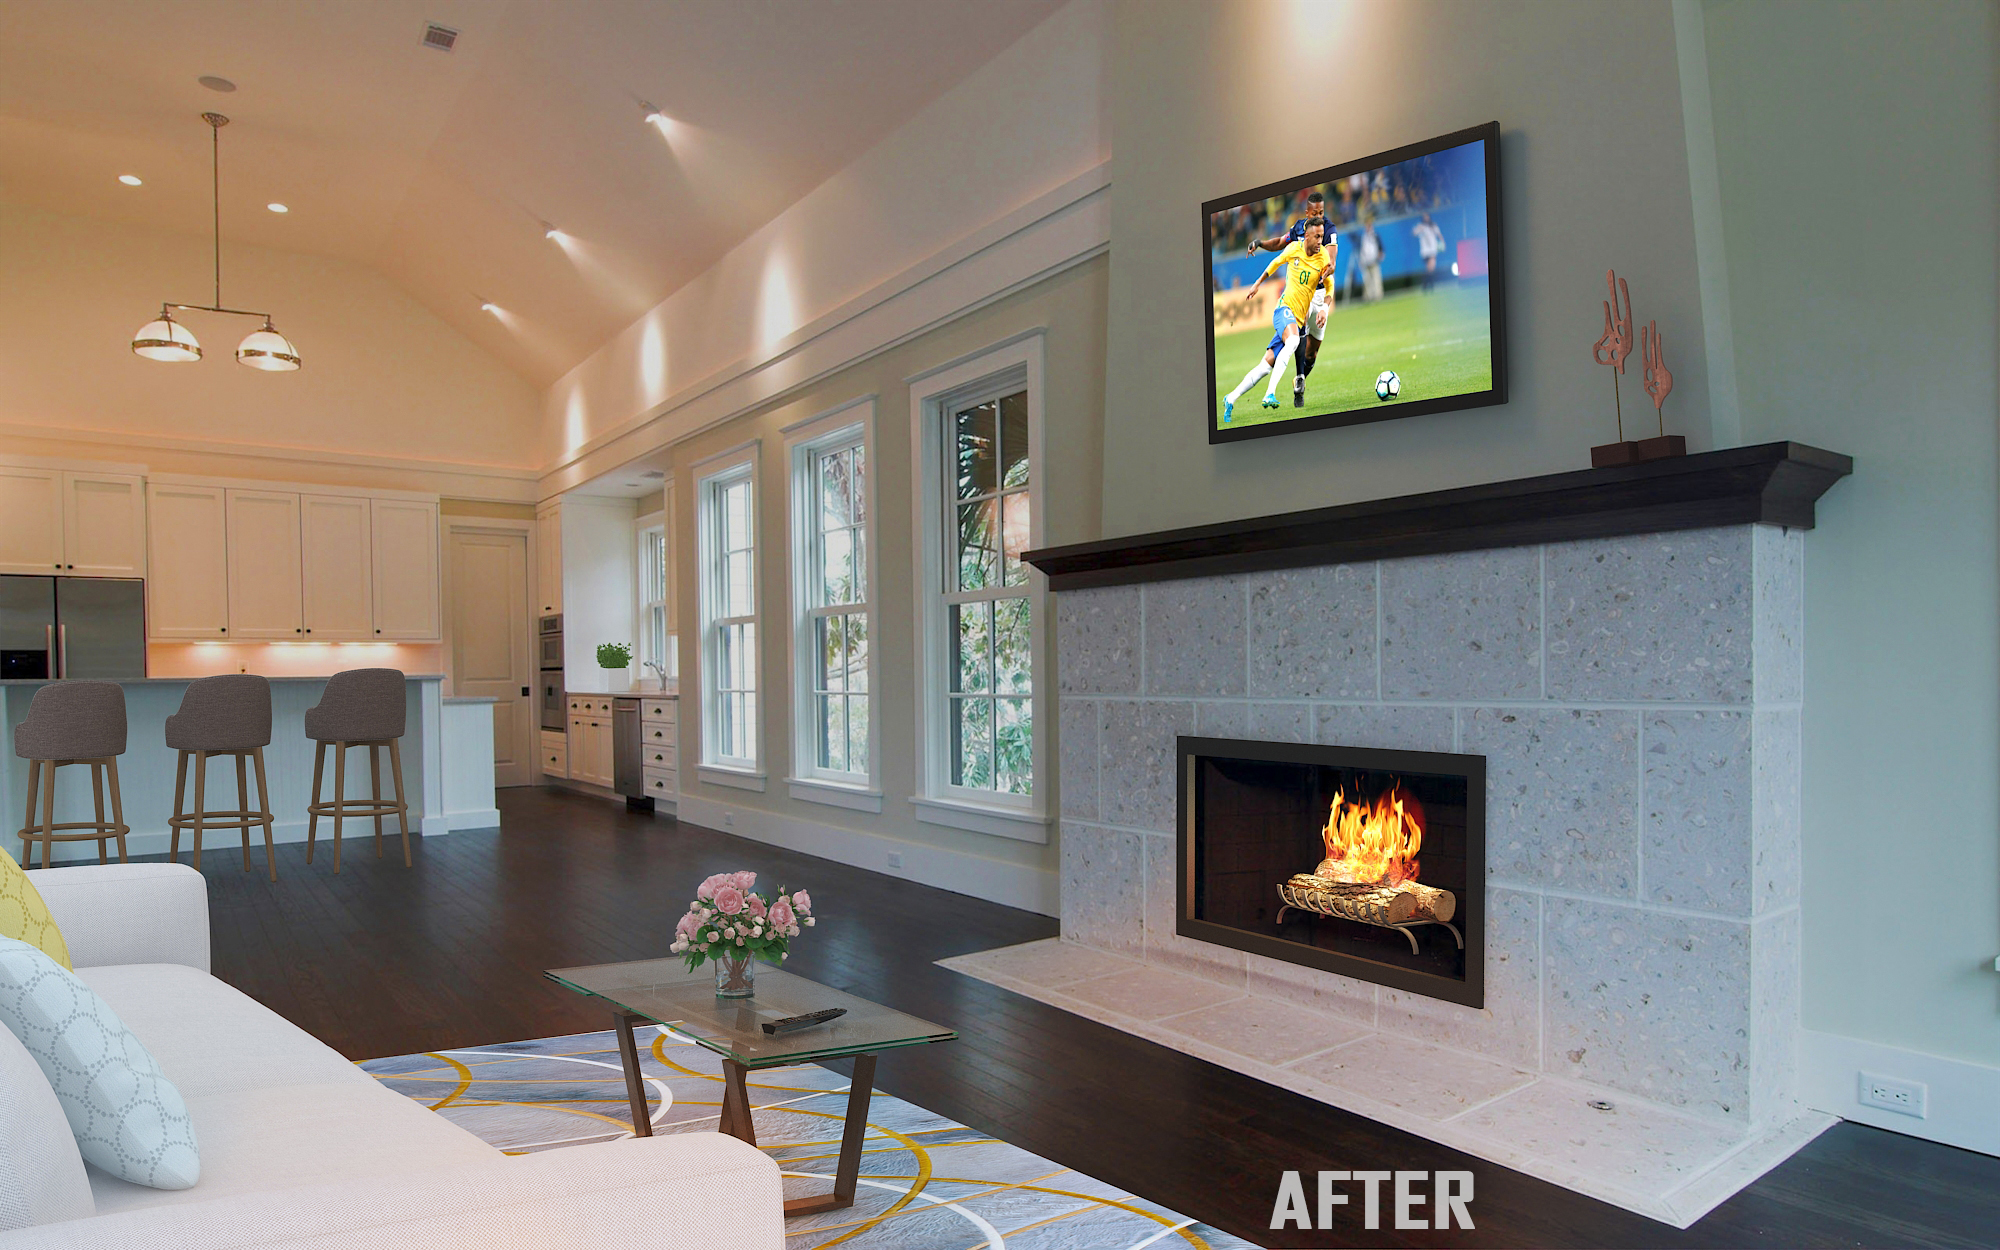 3D Virtual Staging Services After